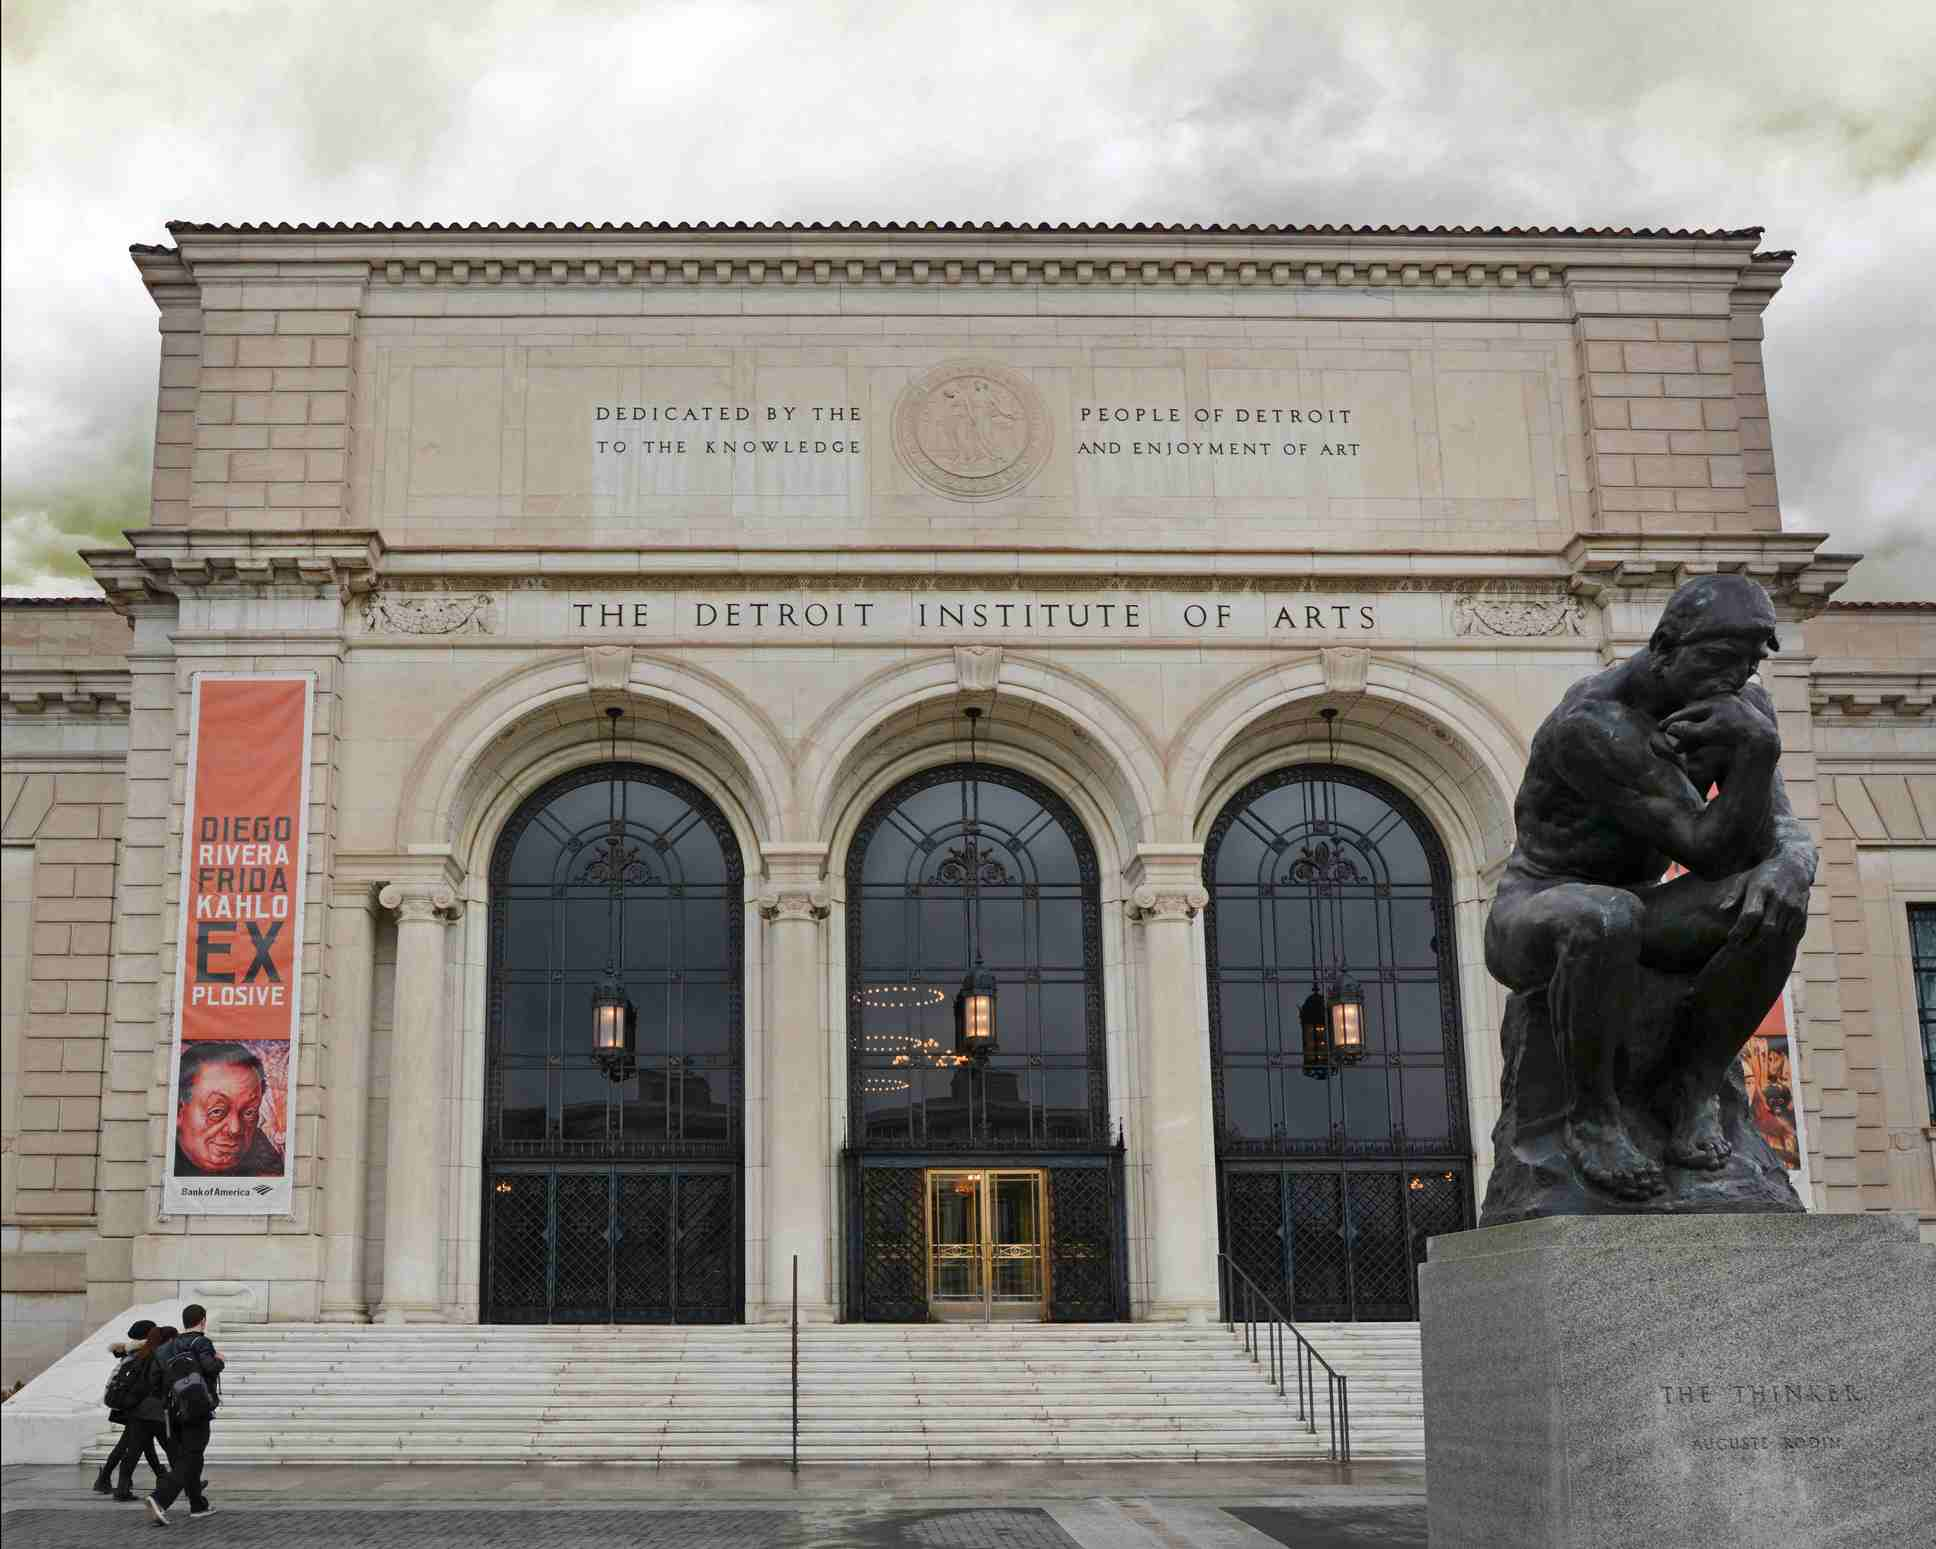 The entrance to the Detroit Institute of Arts (DIA)